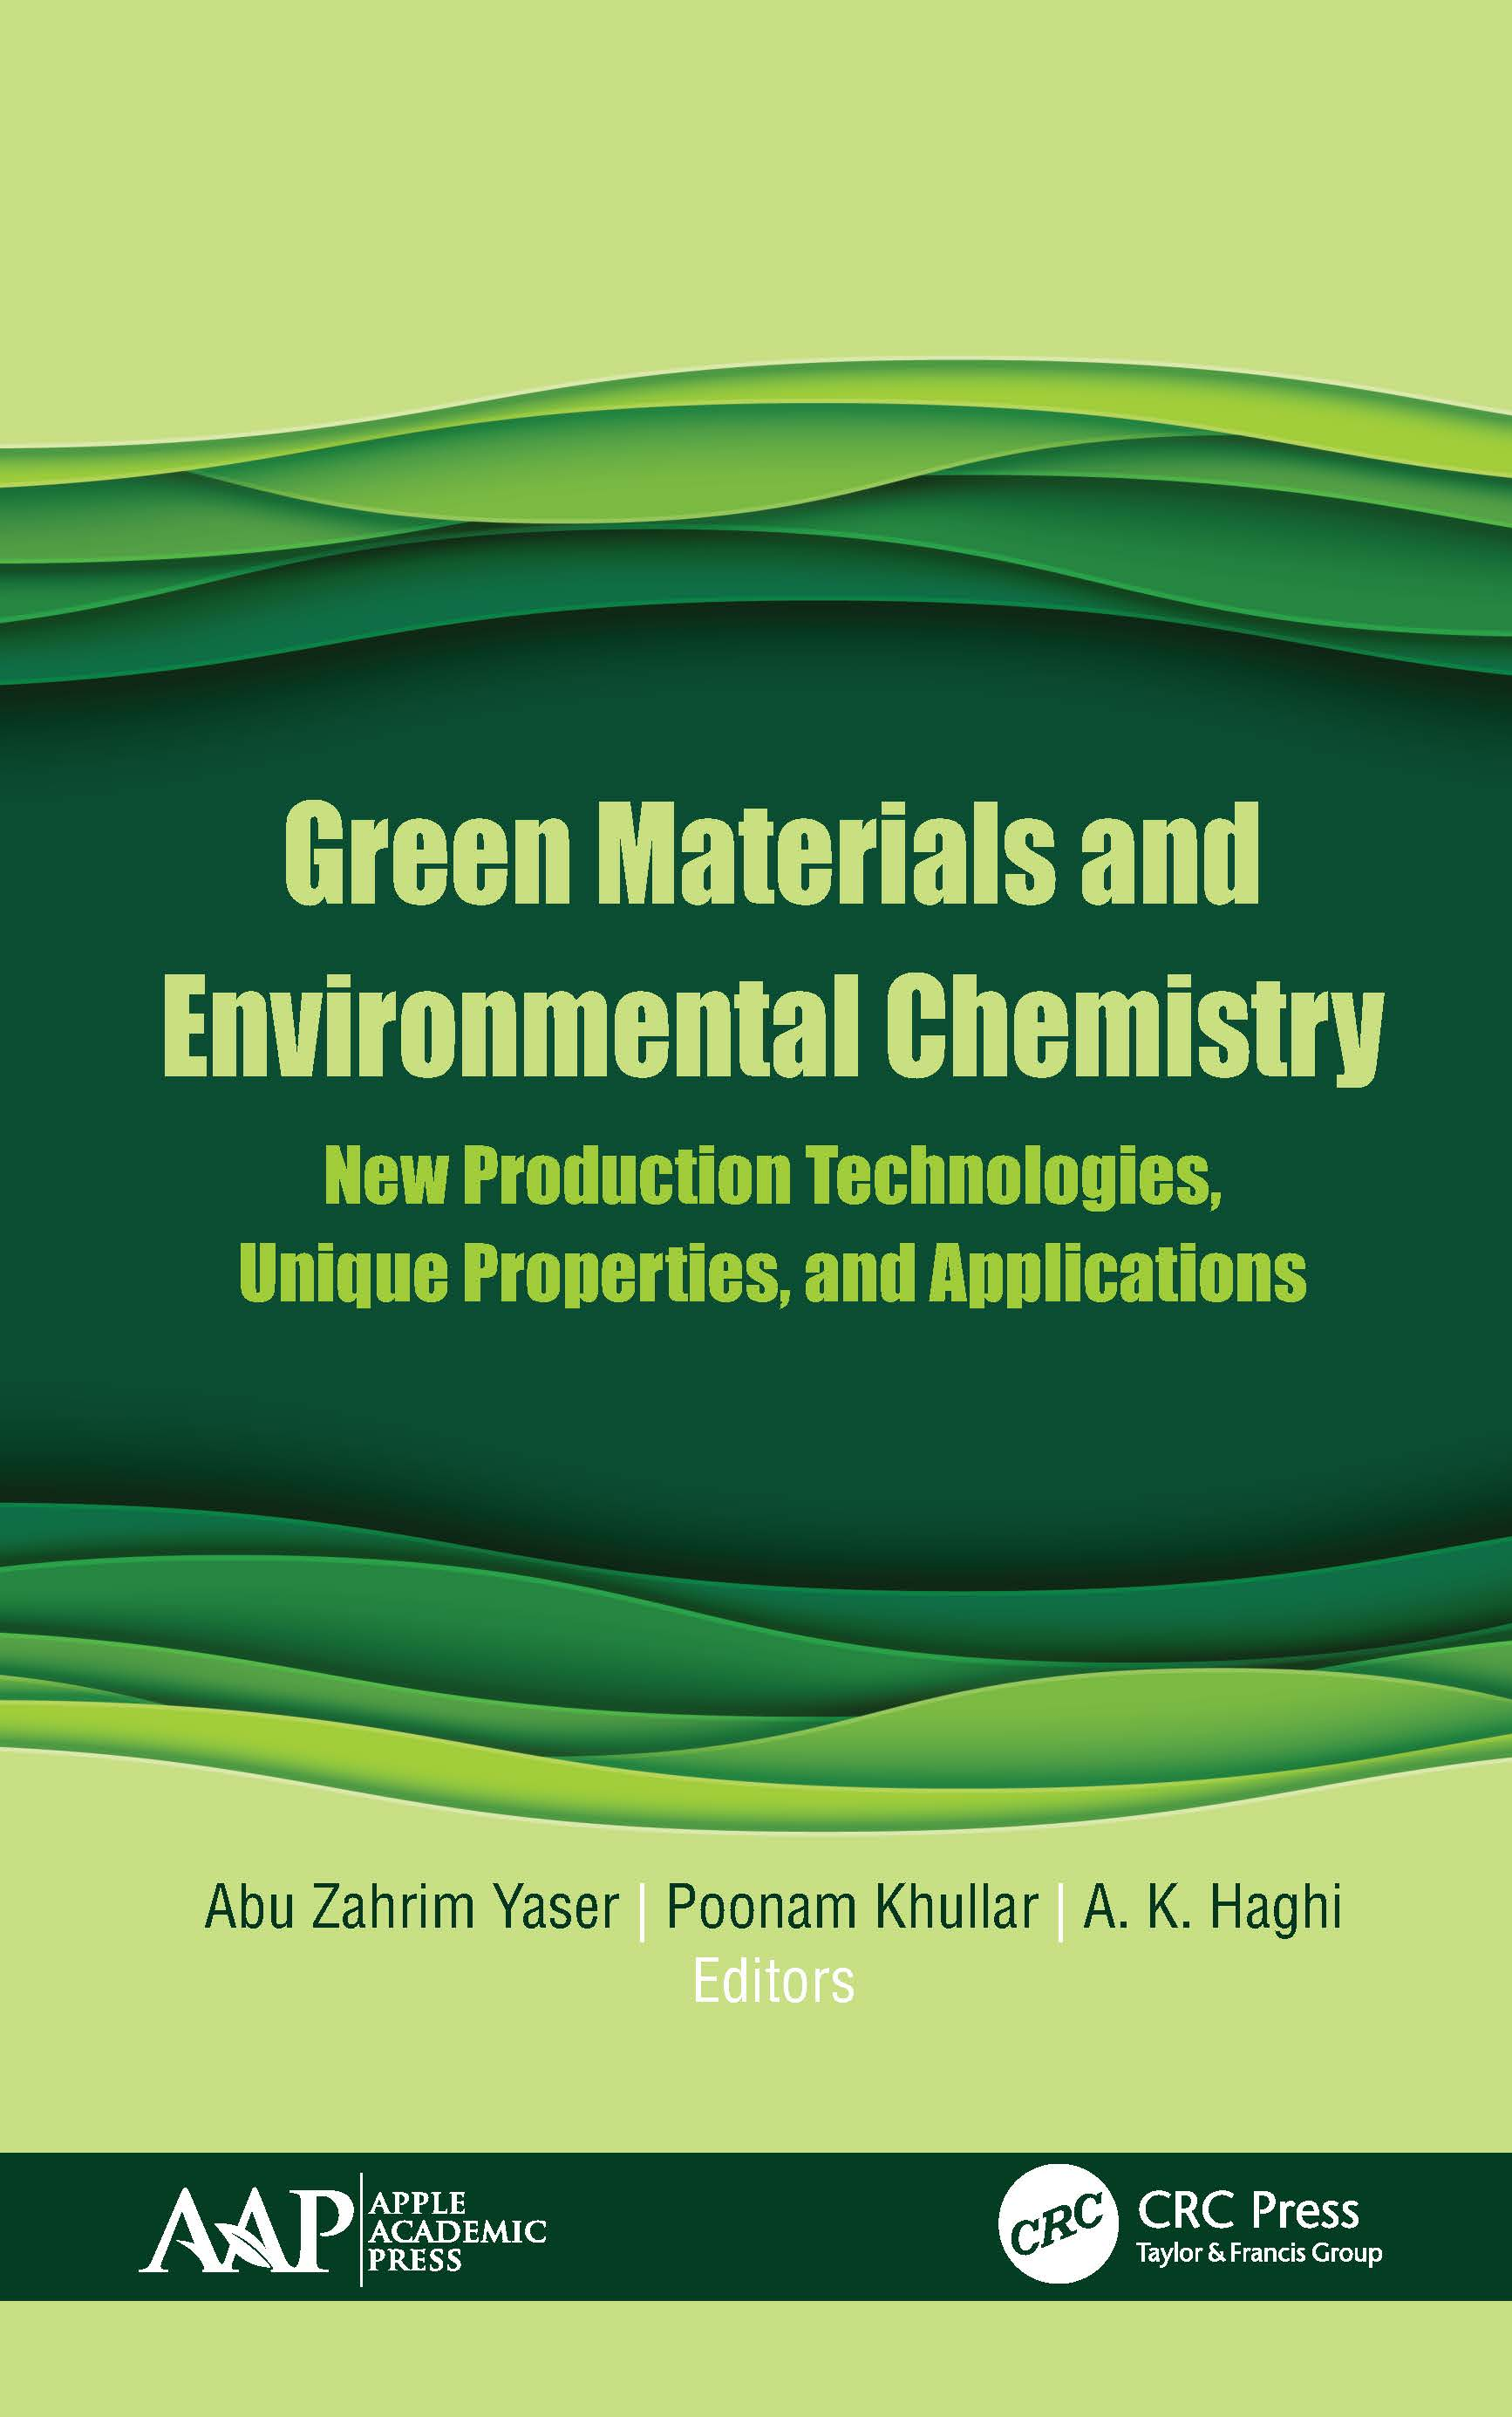 Green Materials and Environmental Chemistry: New Production Technologies, Unique Properties, and Applications book cover